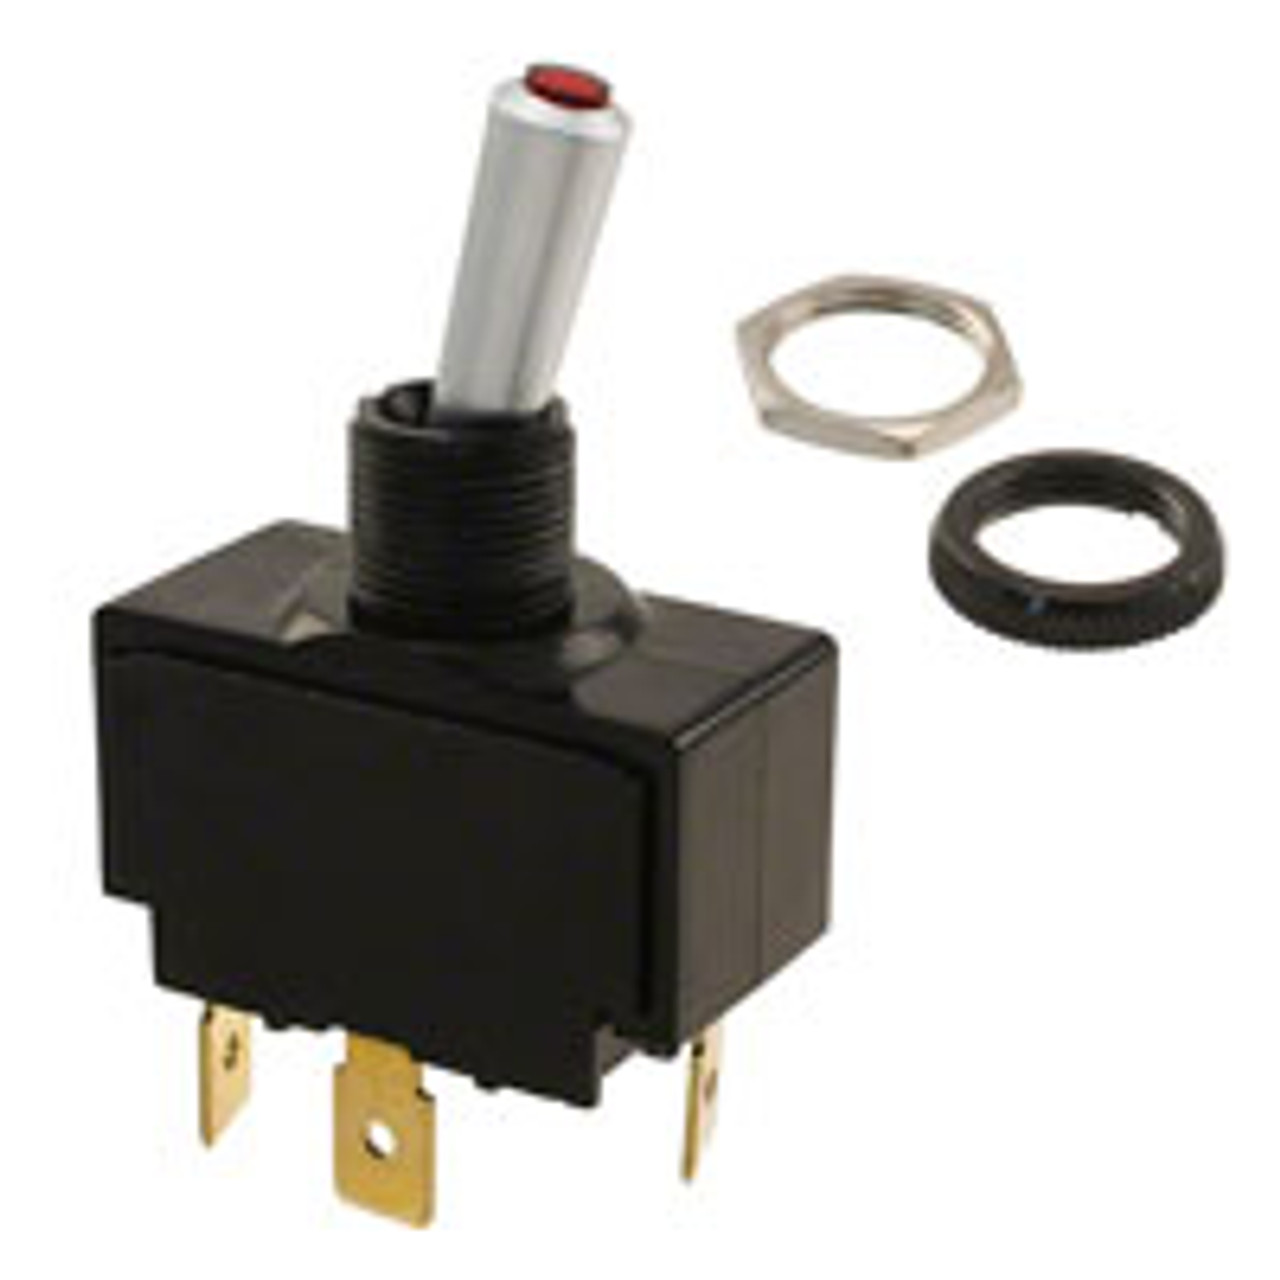 Wiper Switch Wiring Diagram On Off Toggle Switch Wiring Diagram